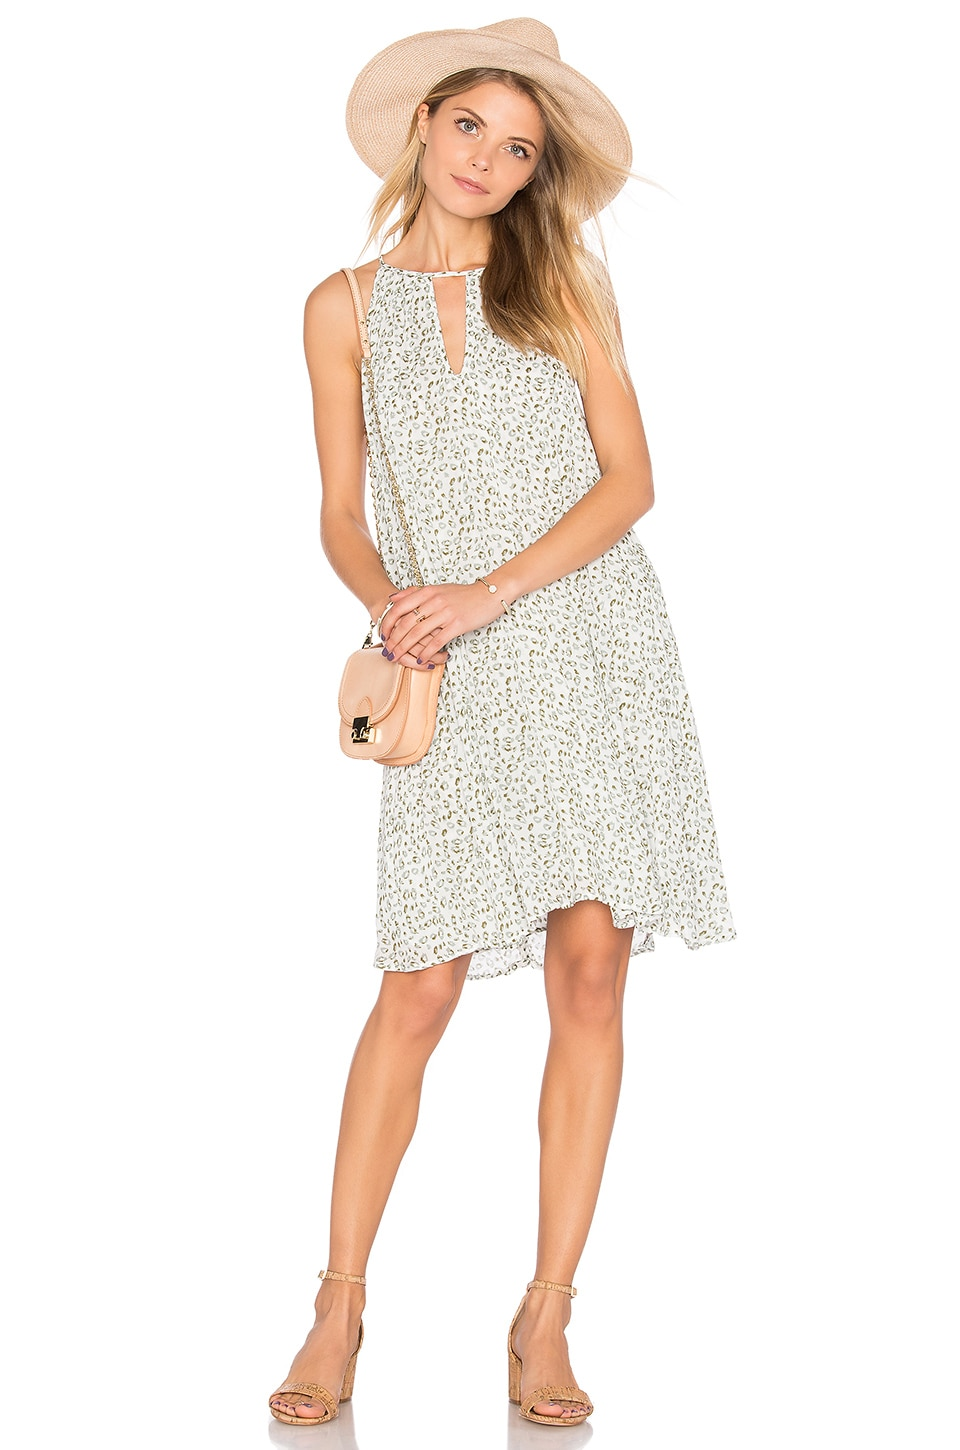 Handkerchief Halter Dress by Bella Dahl